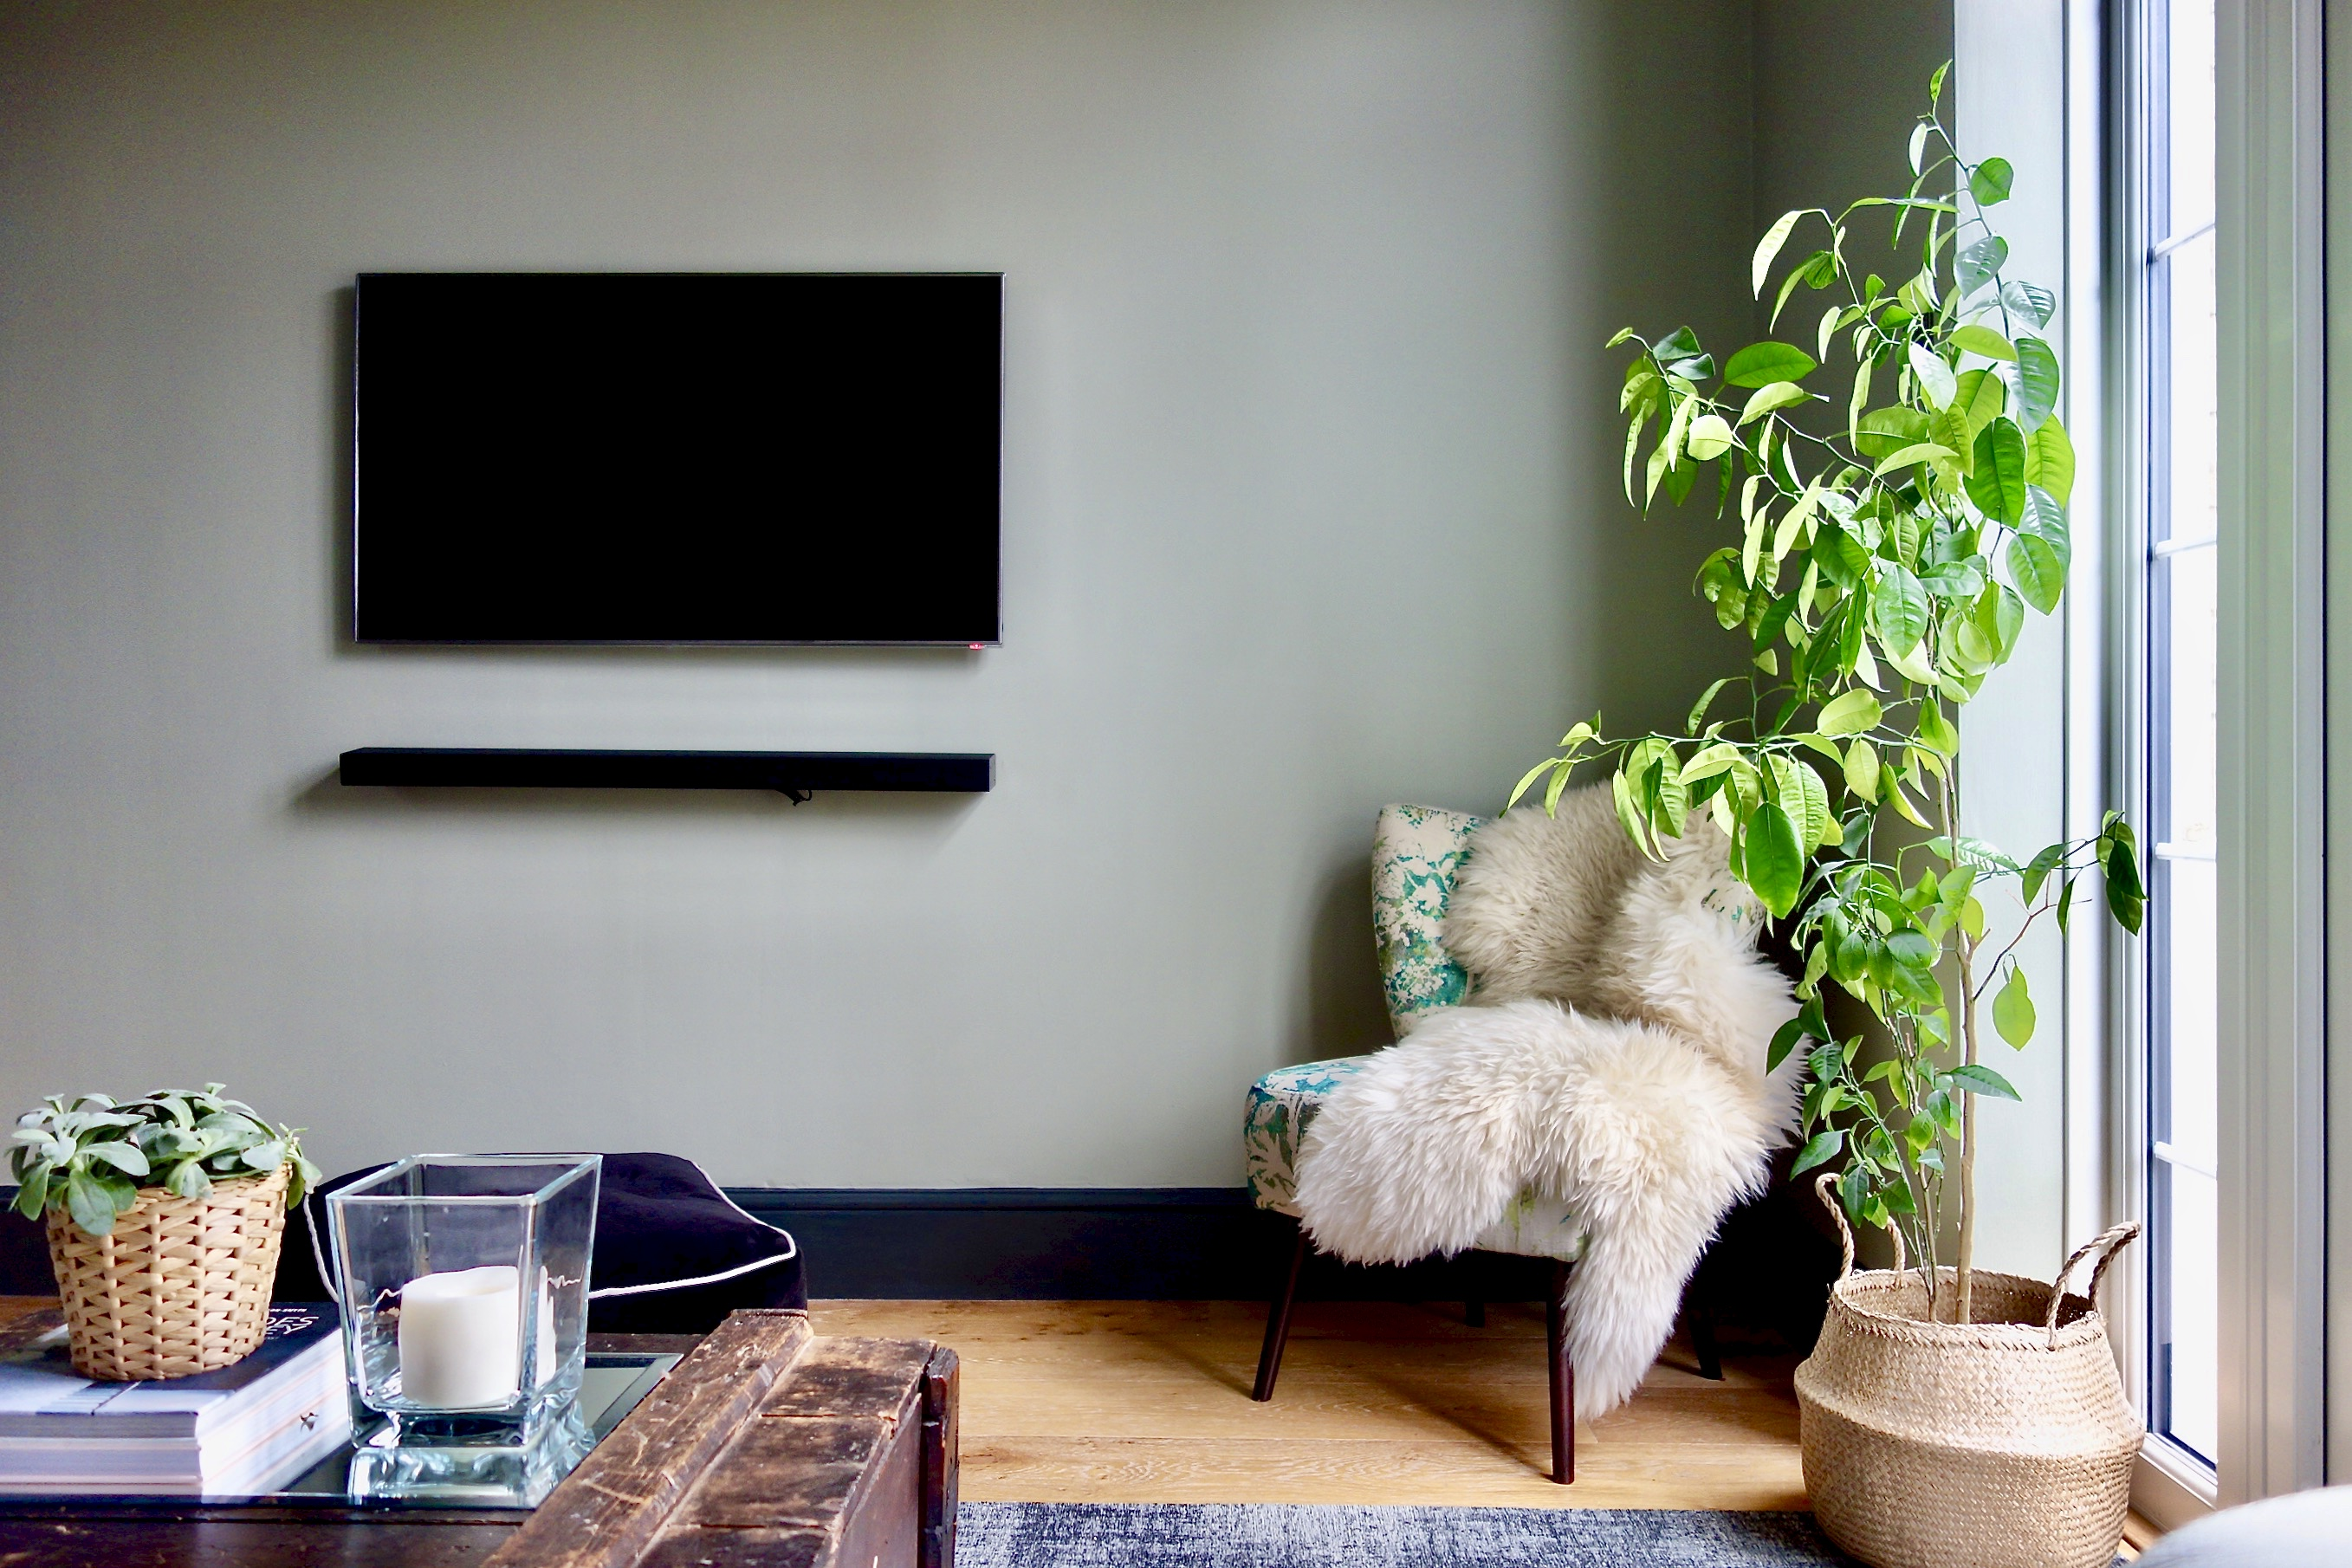 TV Room Design Leeds